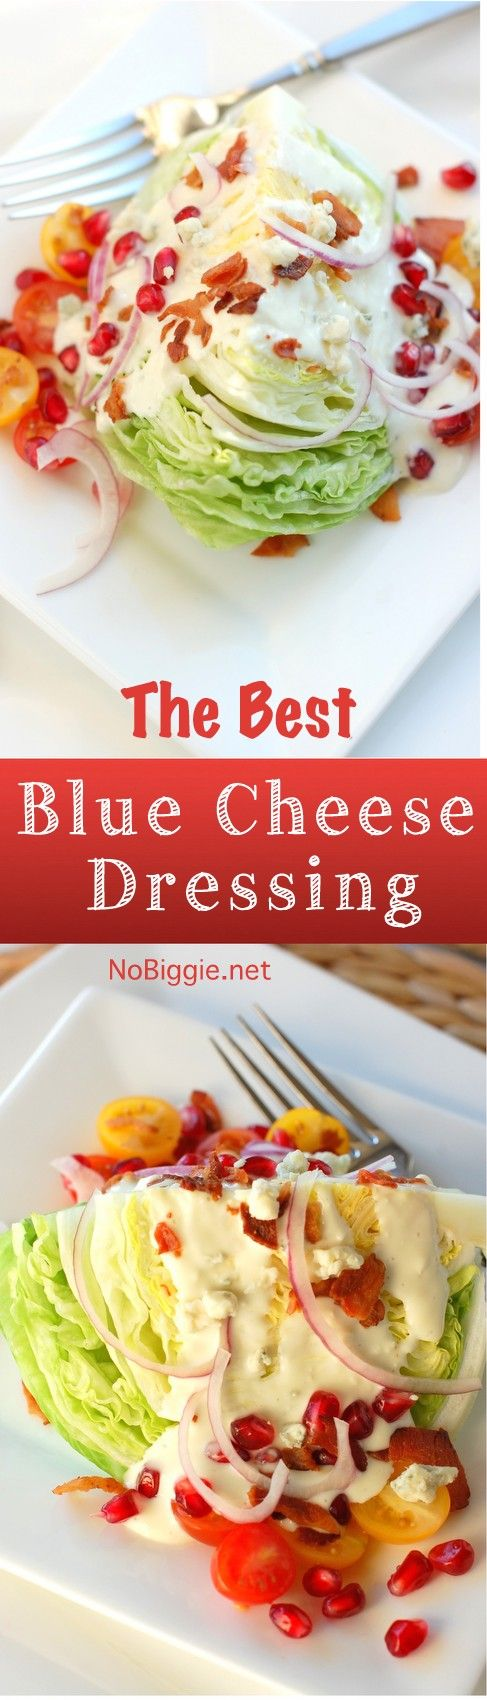 Recipe for the BEST blue cheese dressing | NoBiggie.net